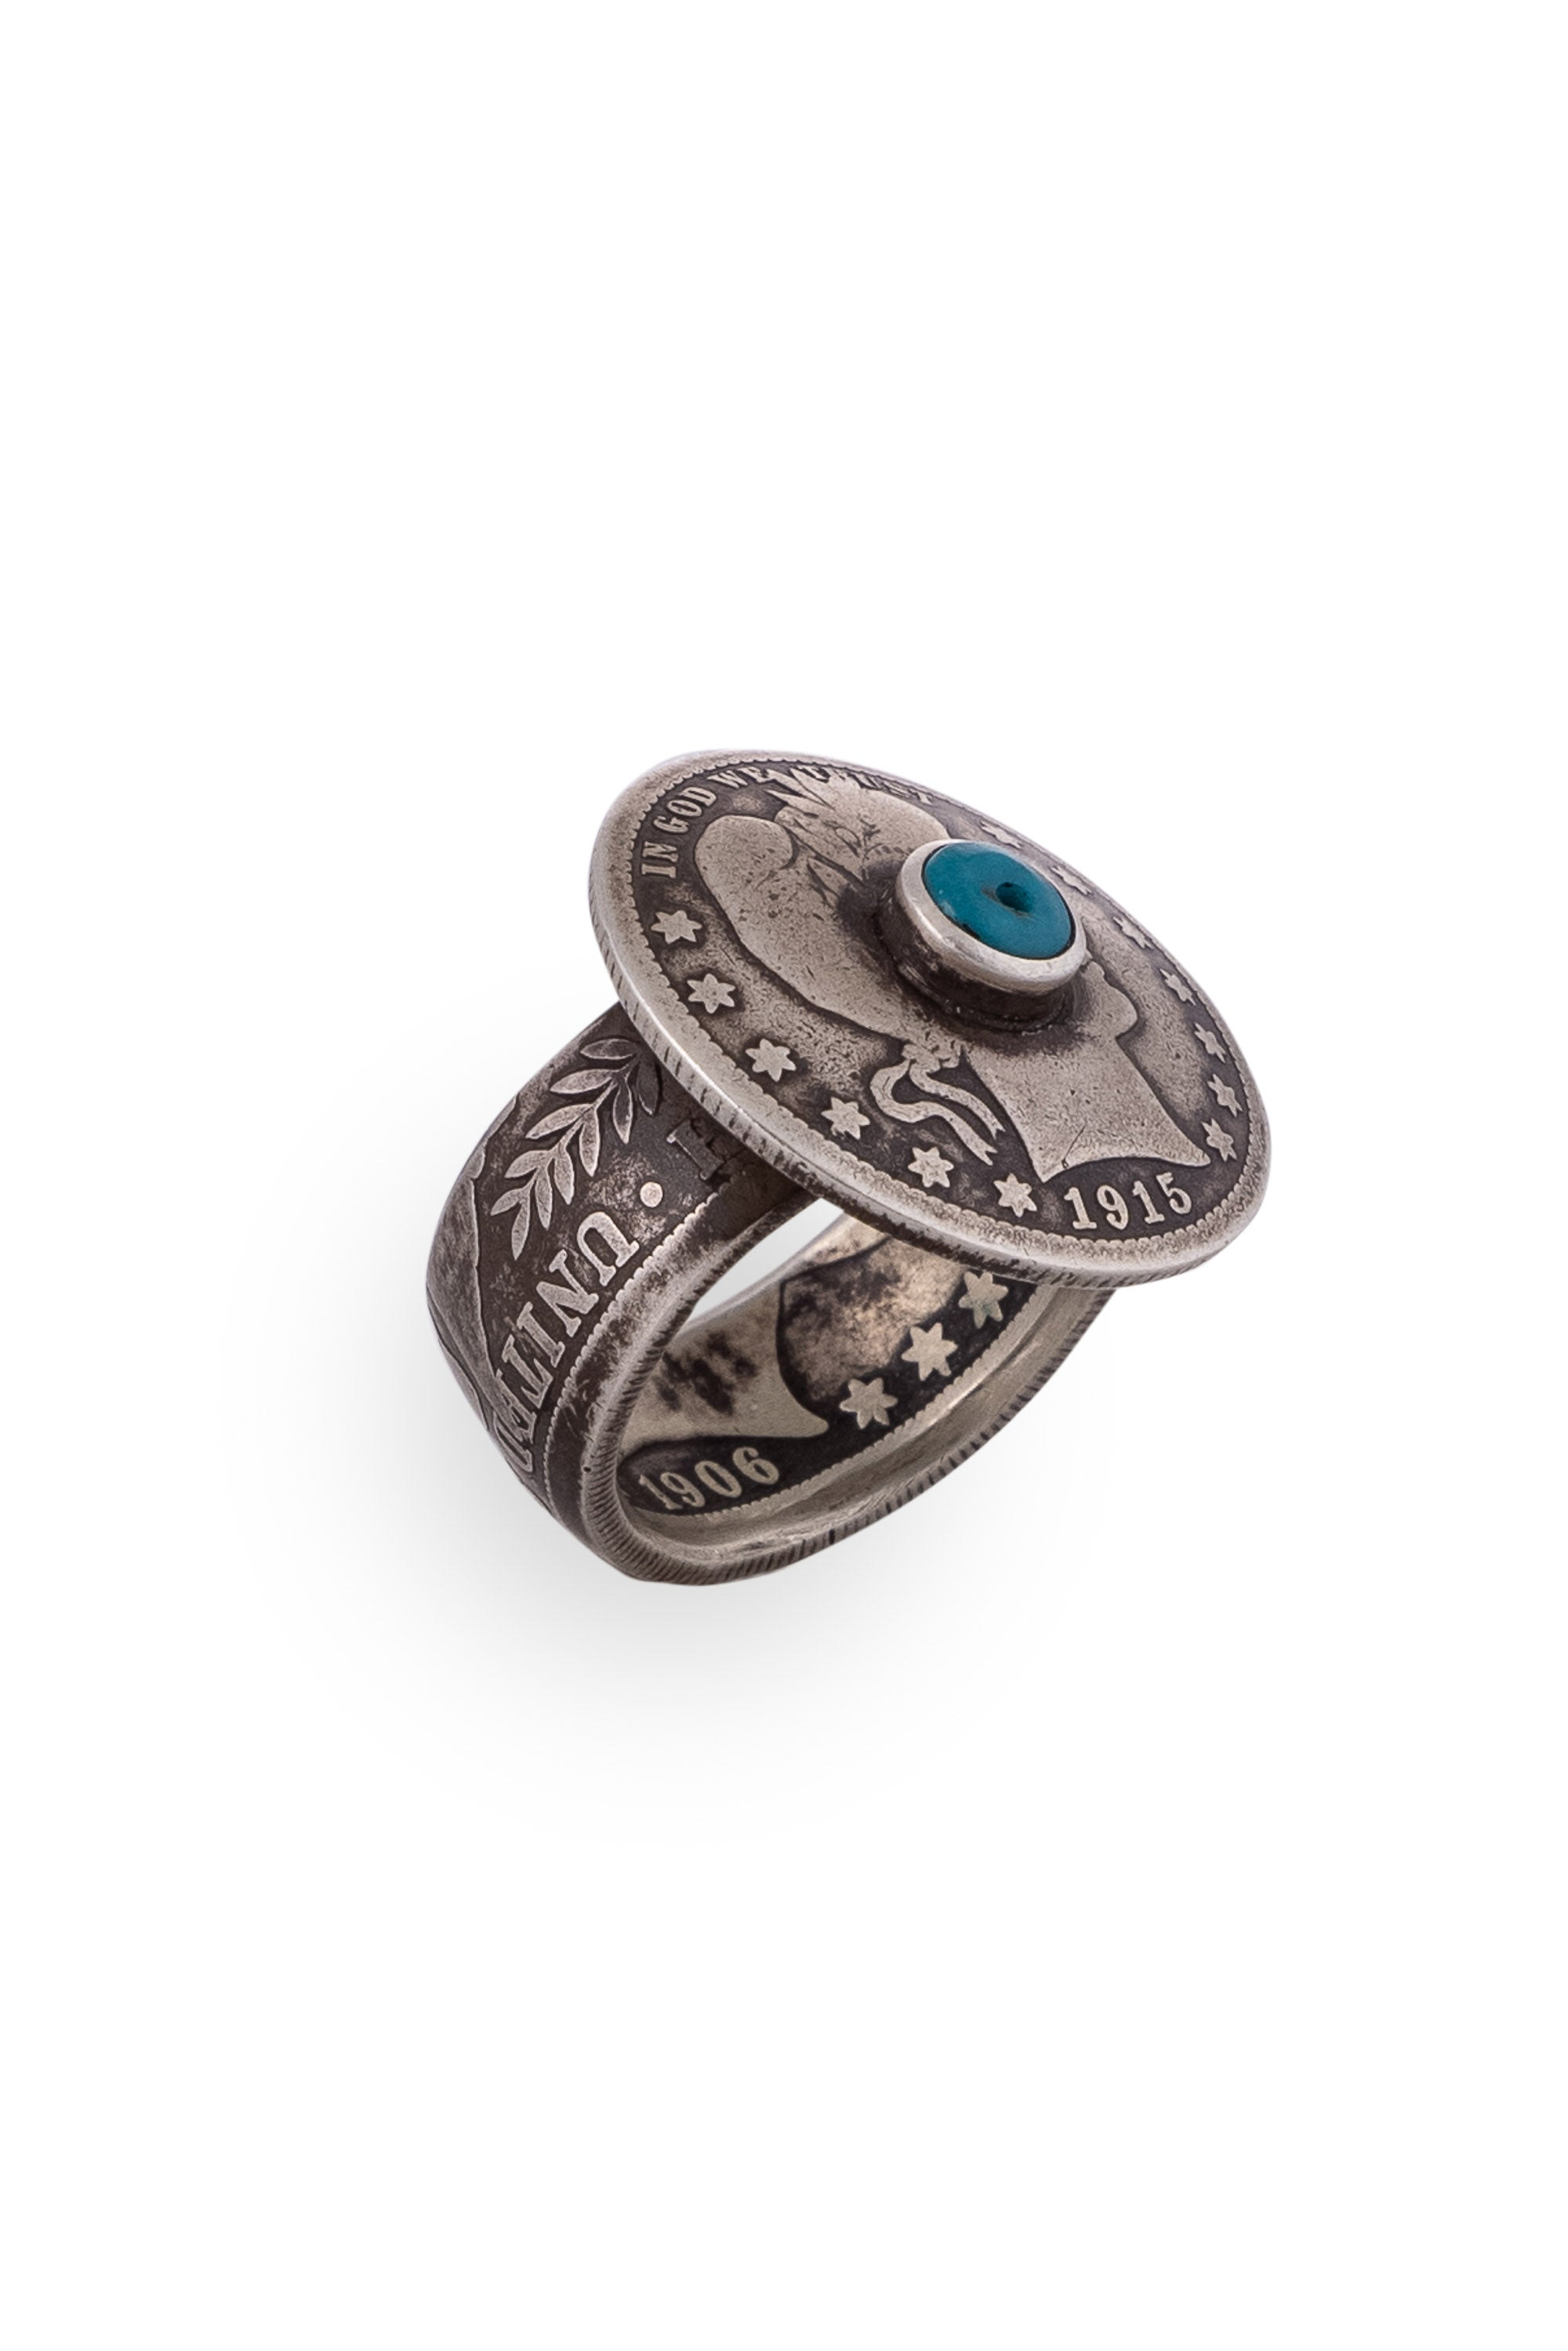 Ring, Coin, Turquoise, Hallmark, Vintage Coin, 699